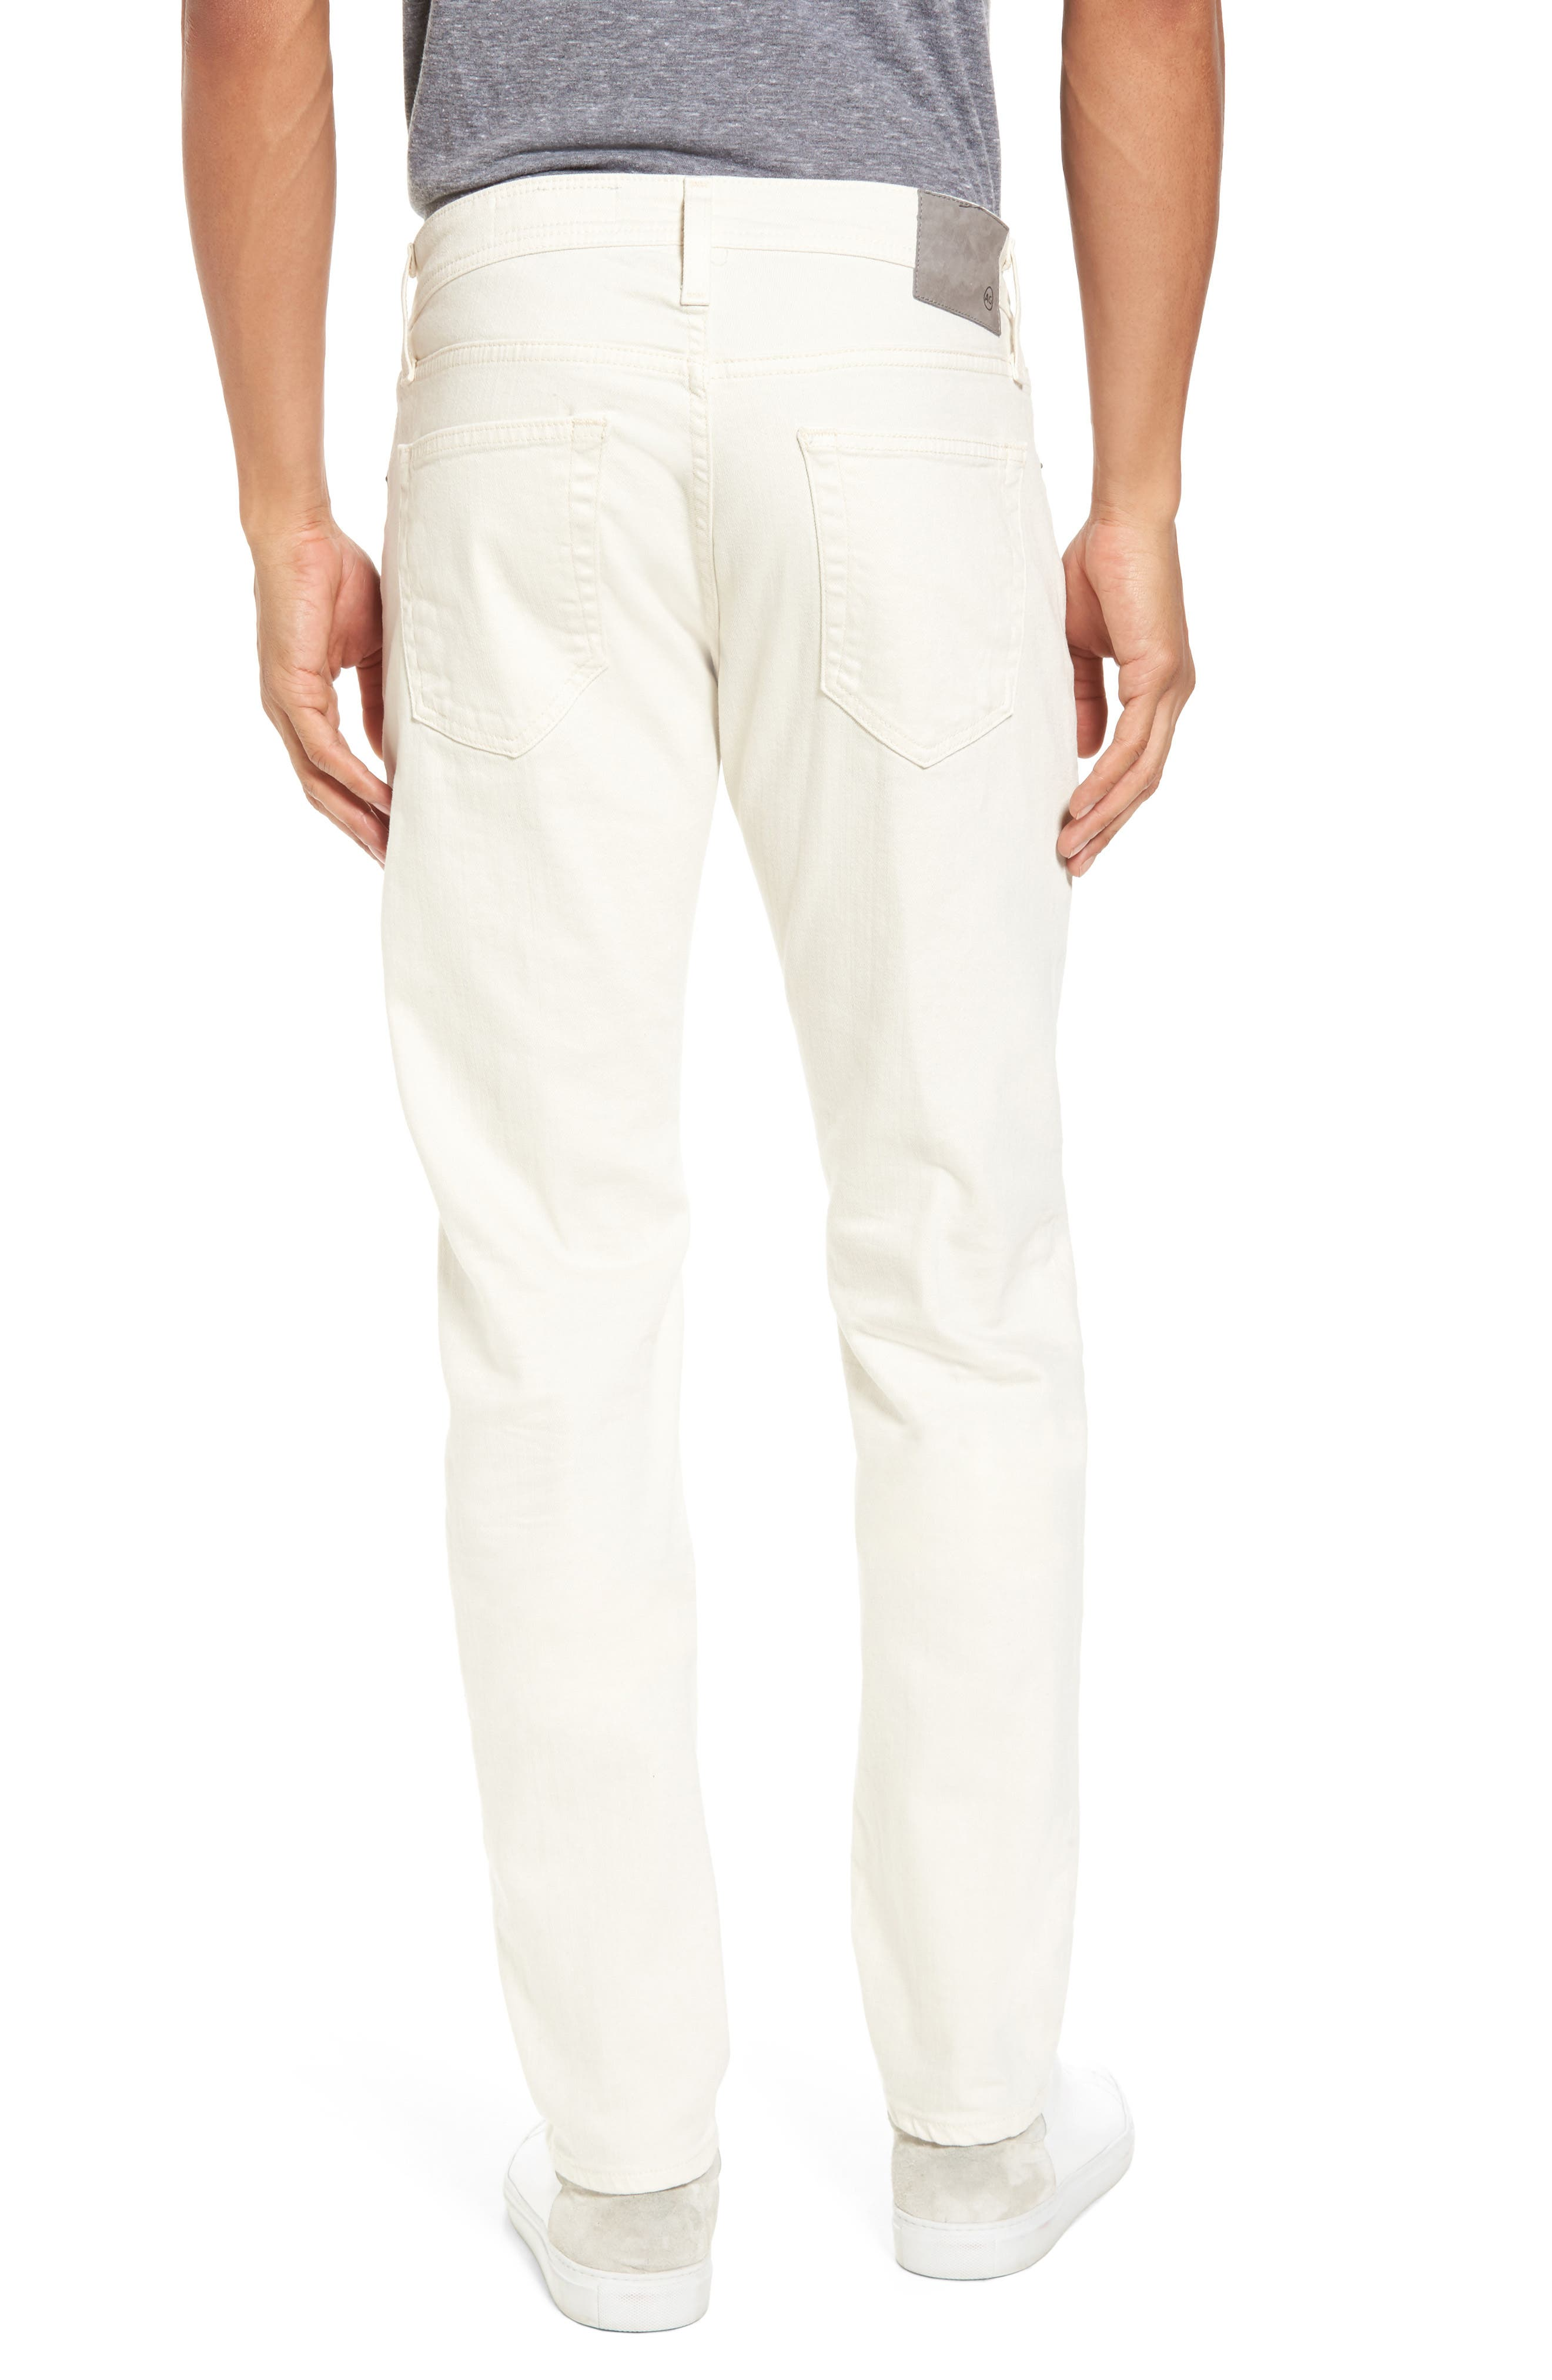 Tellis Modern Slim Twill Pants,                             Alternate thumbnail 2, color,                             1 Year Moon Glade